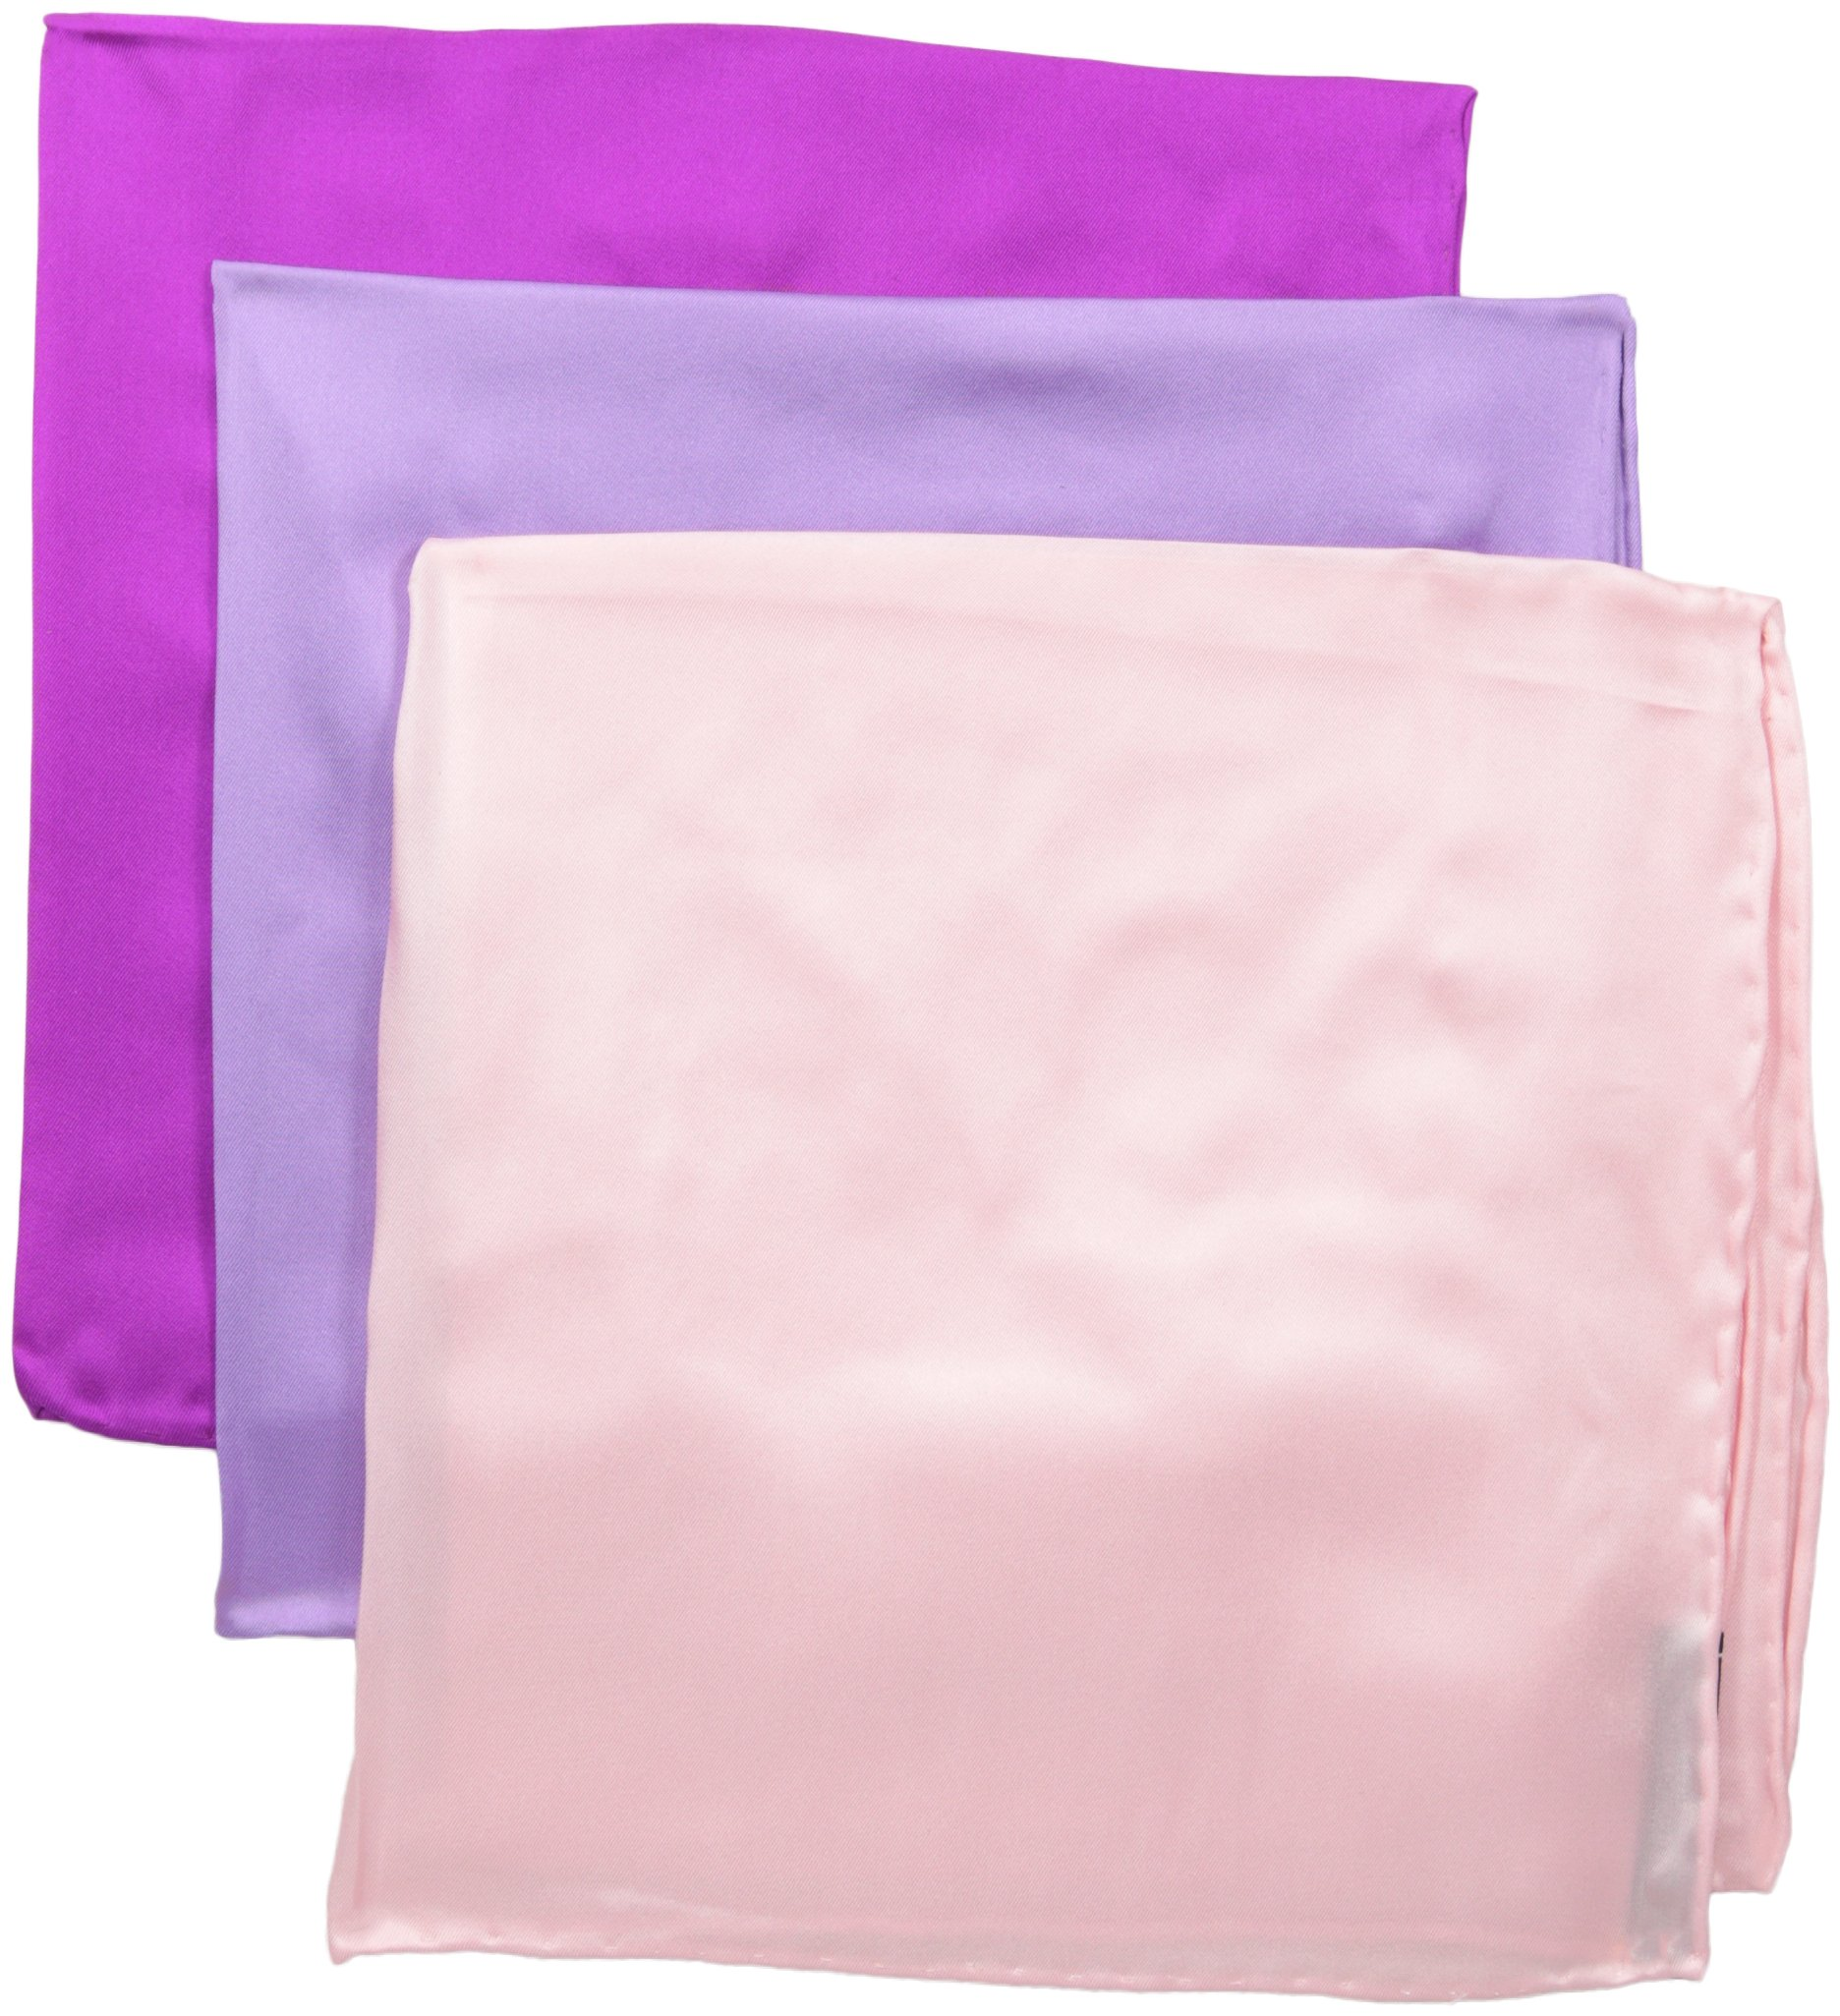 Stacy Adams Men's 100% Silk Hand Rolled 17''x 17'' Pocket Square Three Piece Set, Lilac-Pink-Fushia One Size